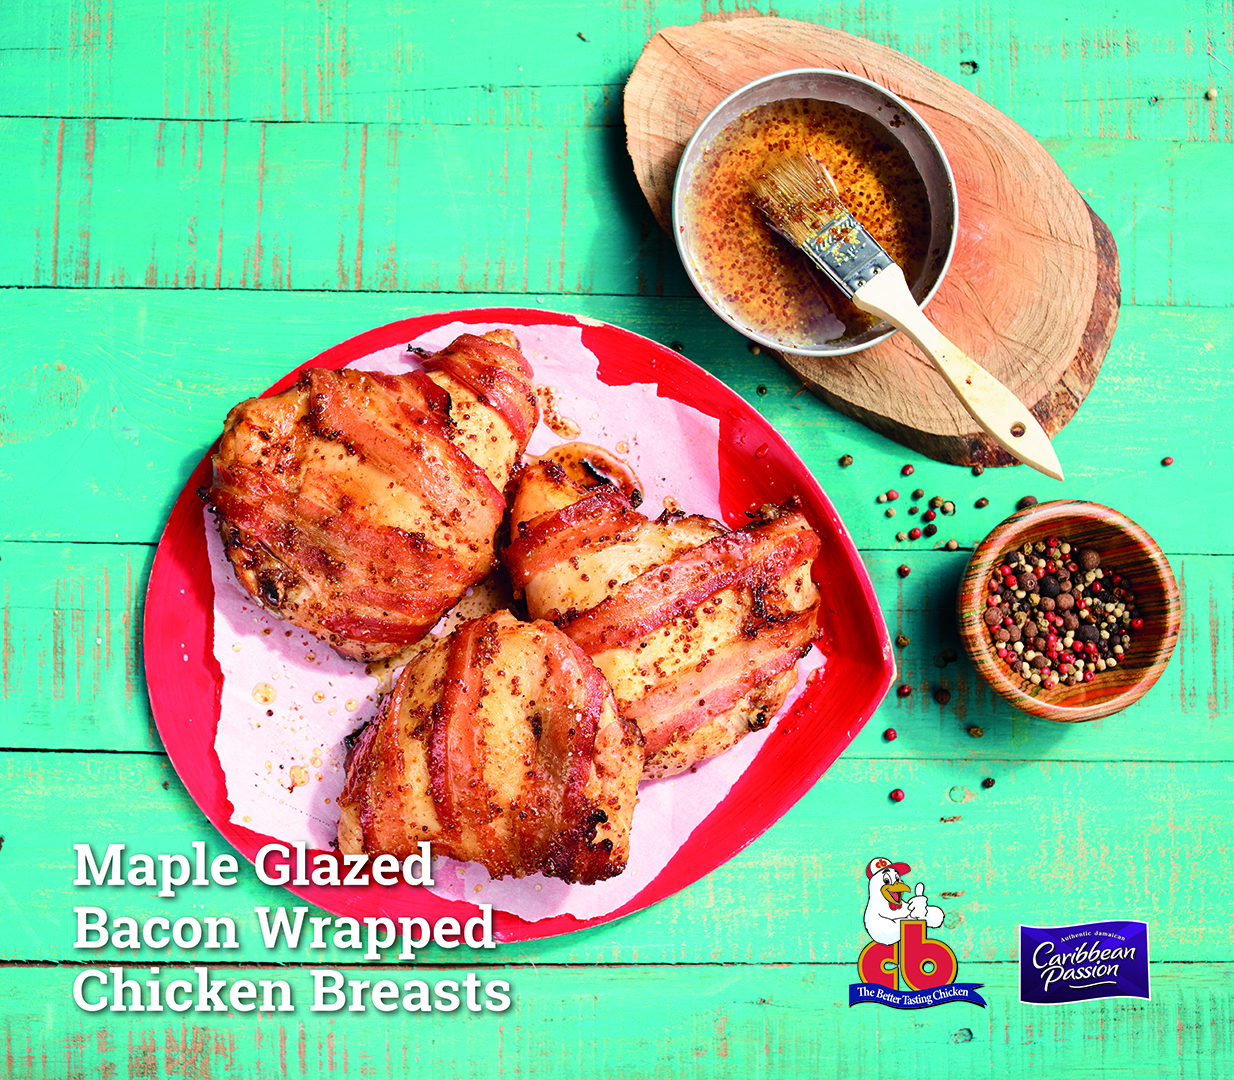 Maple Glazed Bacon Wrapped Chicken Breasts